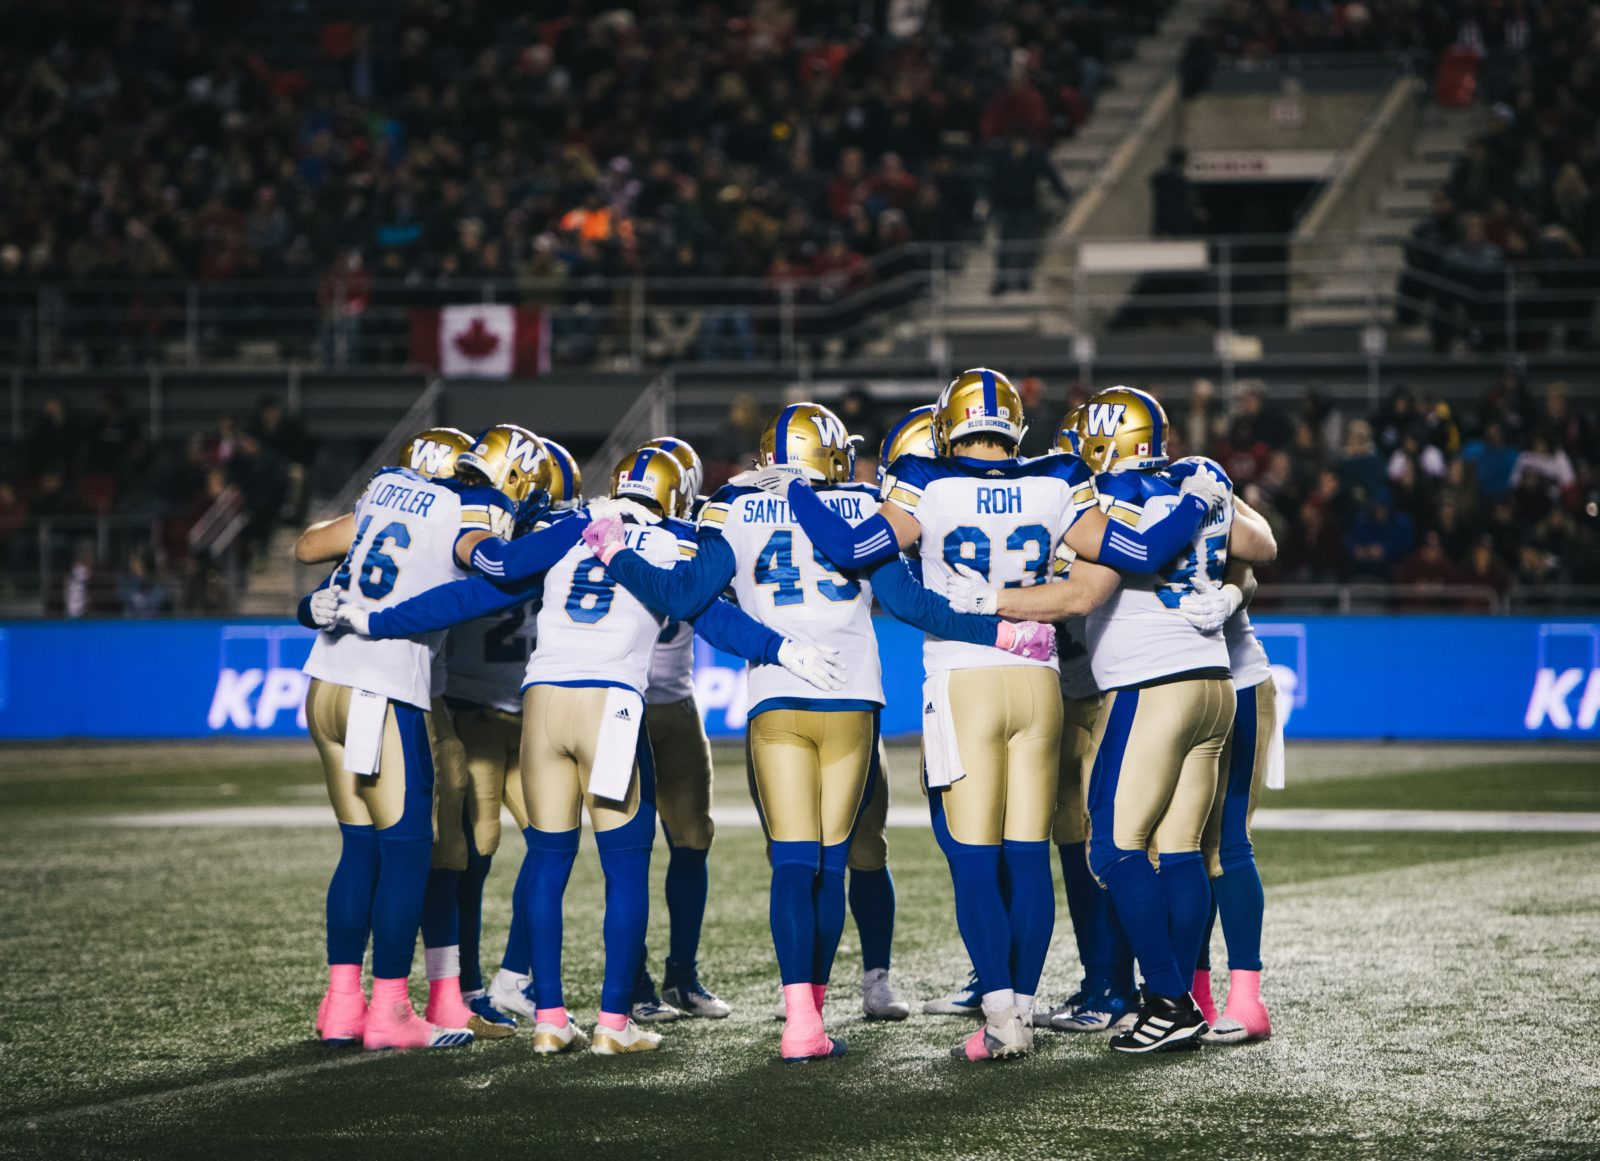 AS MUCH AS THE BOMBERS FUMBLED WITH SEALING THE  W  IN REGULATION…  something must be said about their ability to recover between the end of  regulation time ... 09c872cd3beb